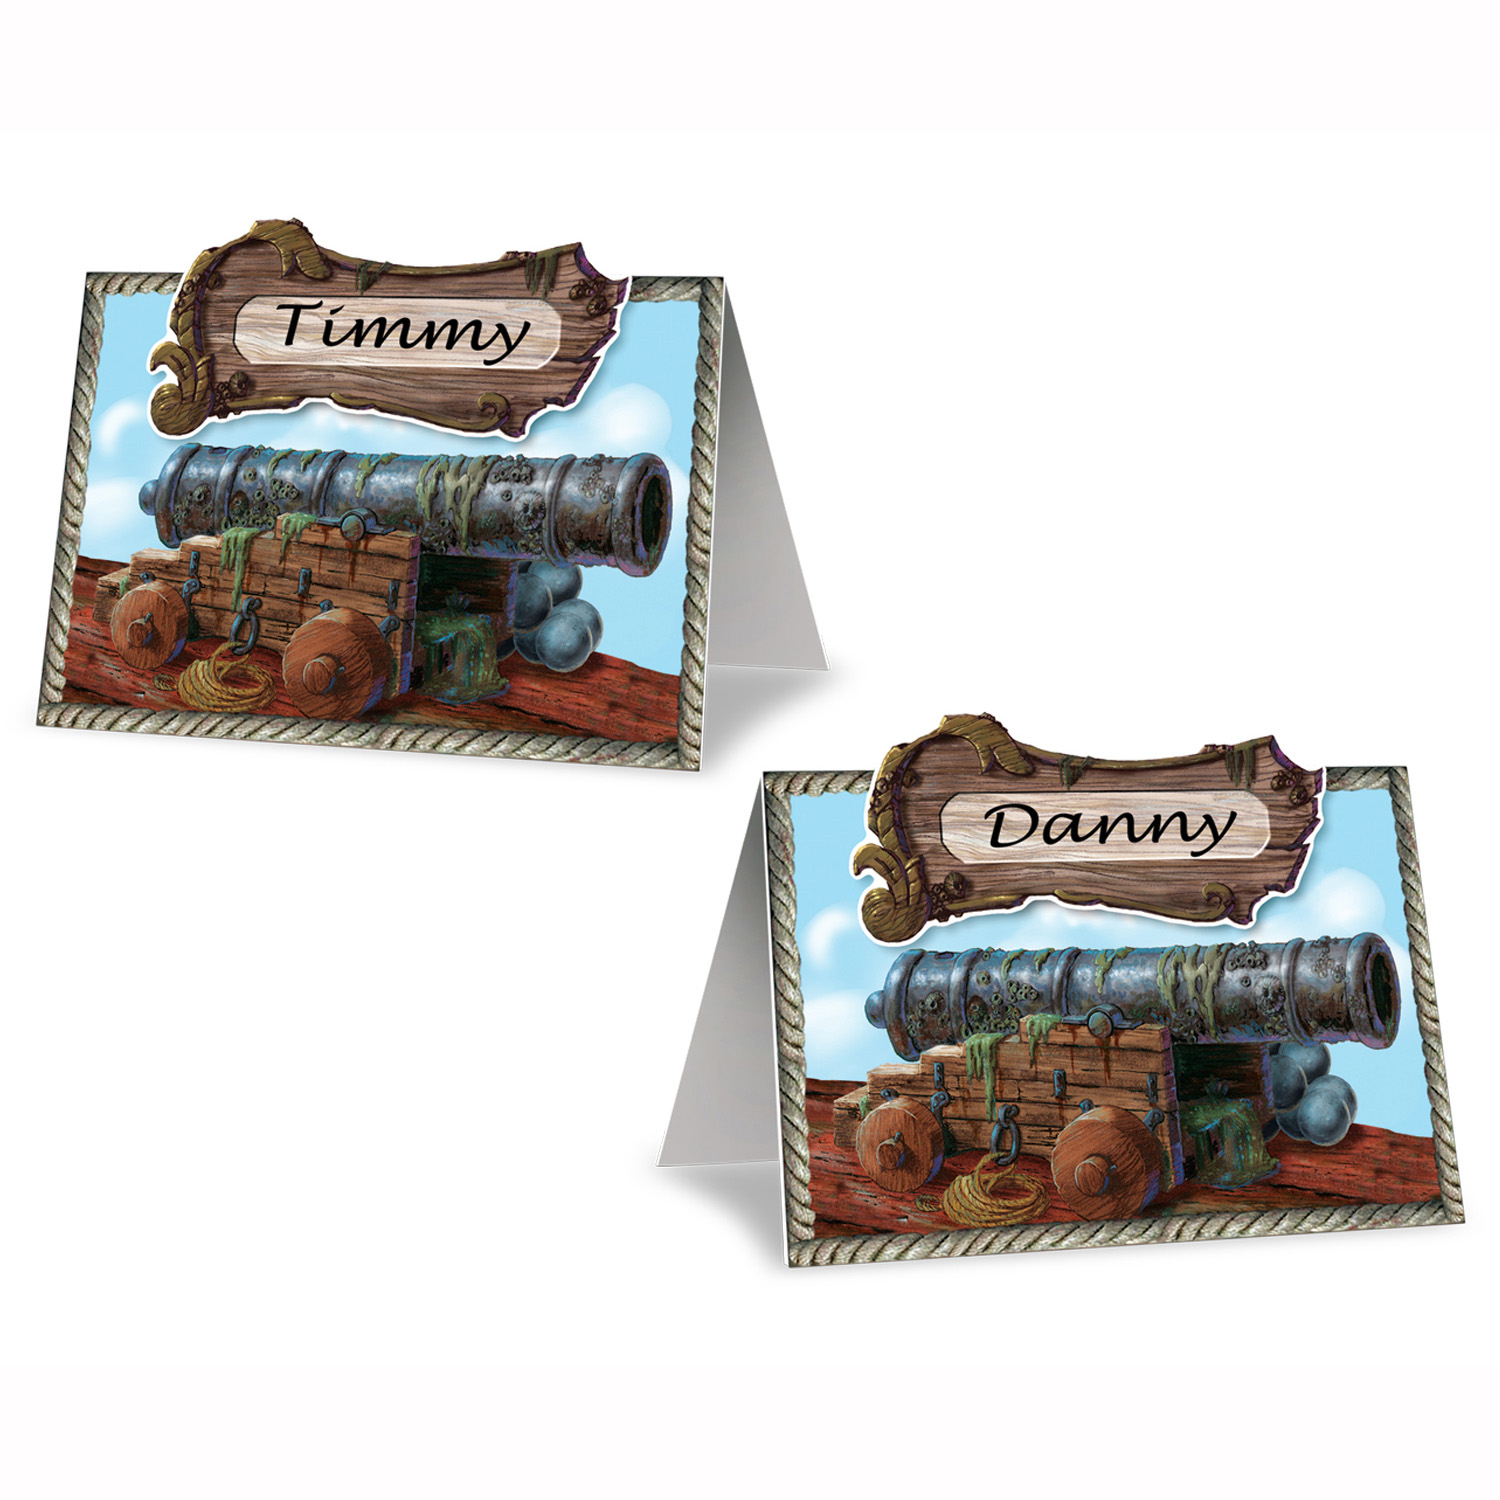 Pirate Cannon Place Cards (Pack of 96) Place Cards, Name Tags, Pirate Name Cards, Pirate Cannon, Pirate place cards